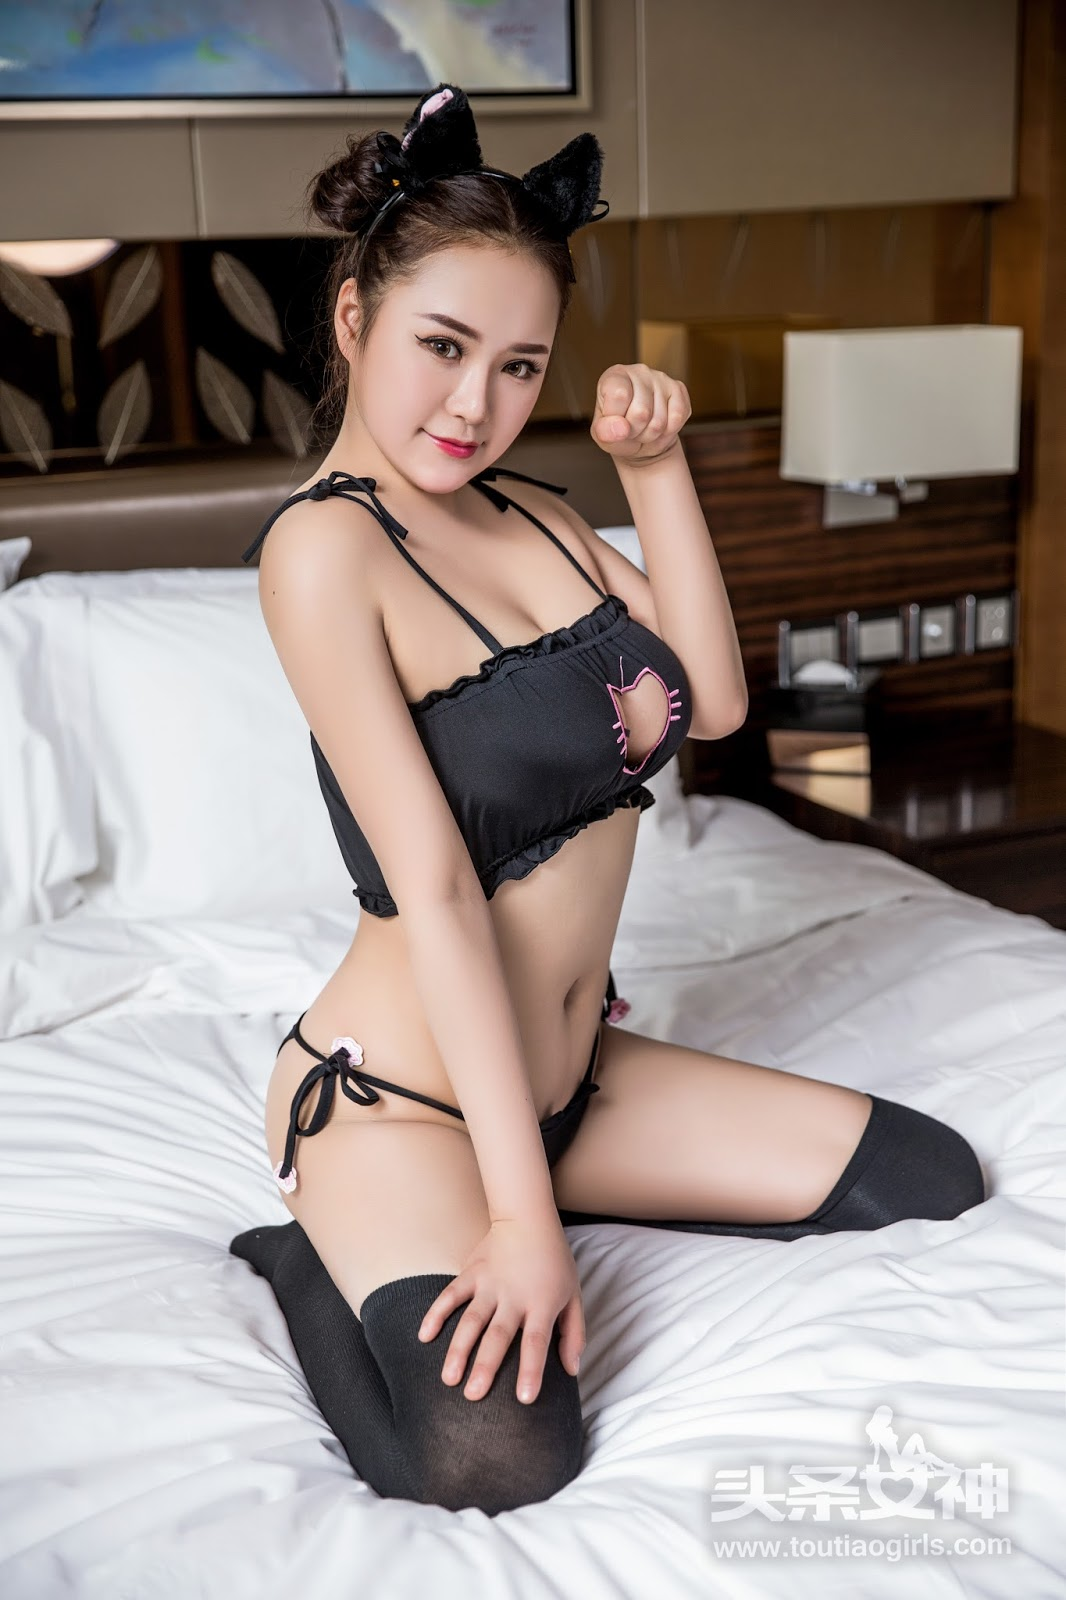 TouTiao 2017-07-20 Tao Mei Yangzi (13 pics) 桃美洋子 TouTiao pictures Tao Mei Yangzi gravure chinesse girl china